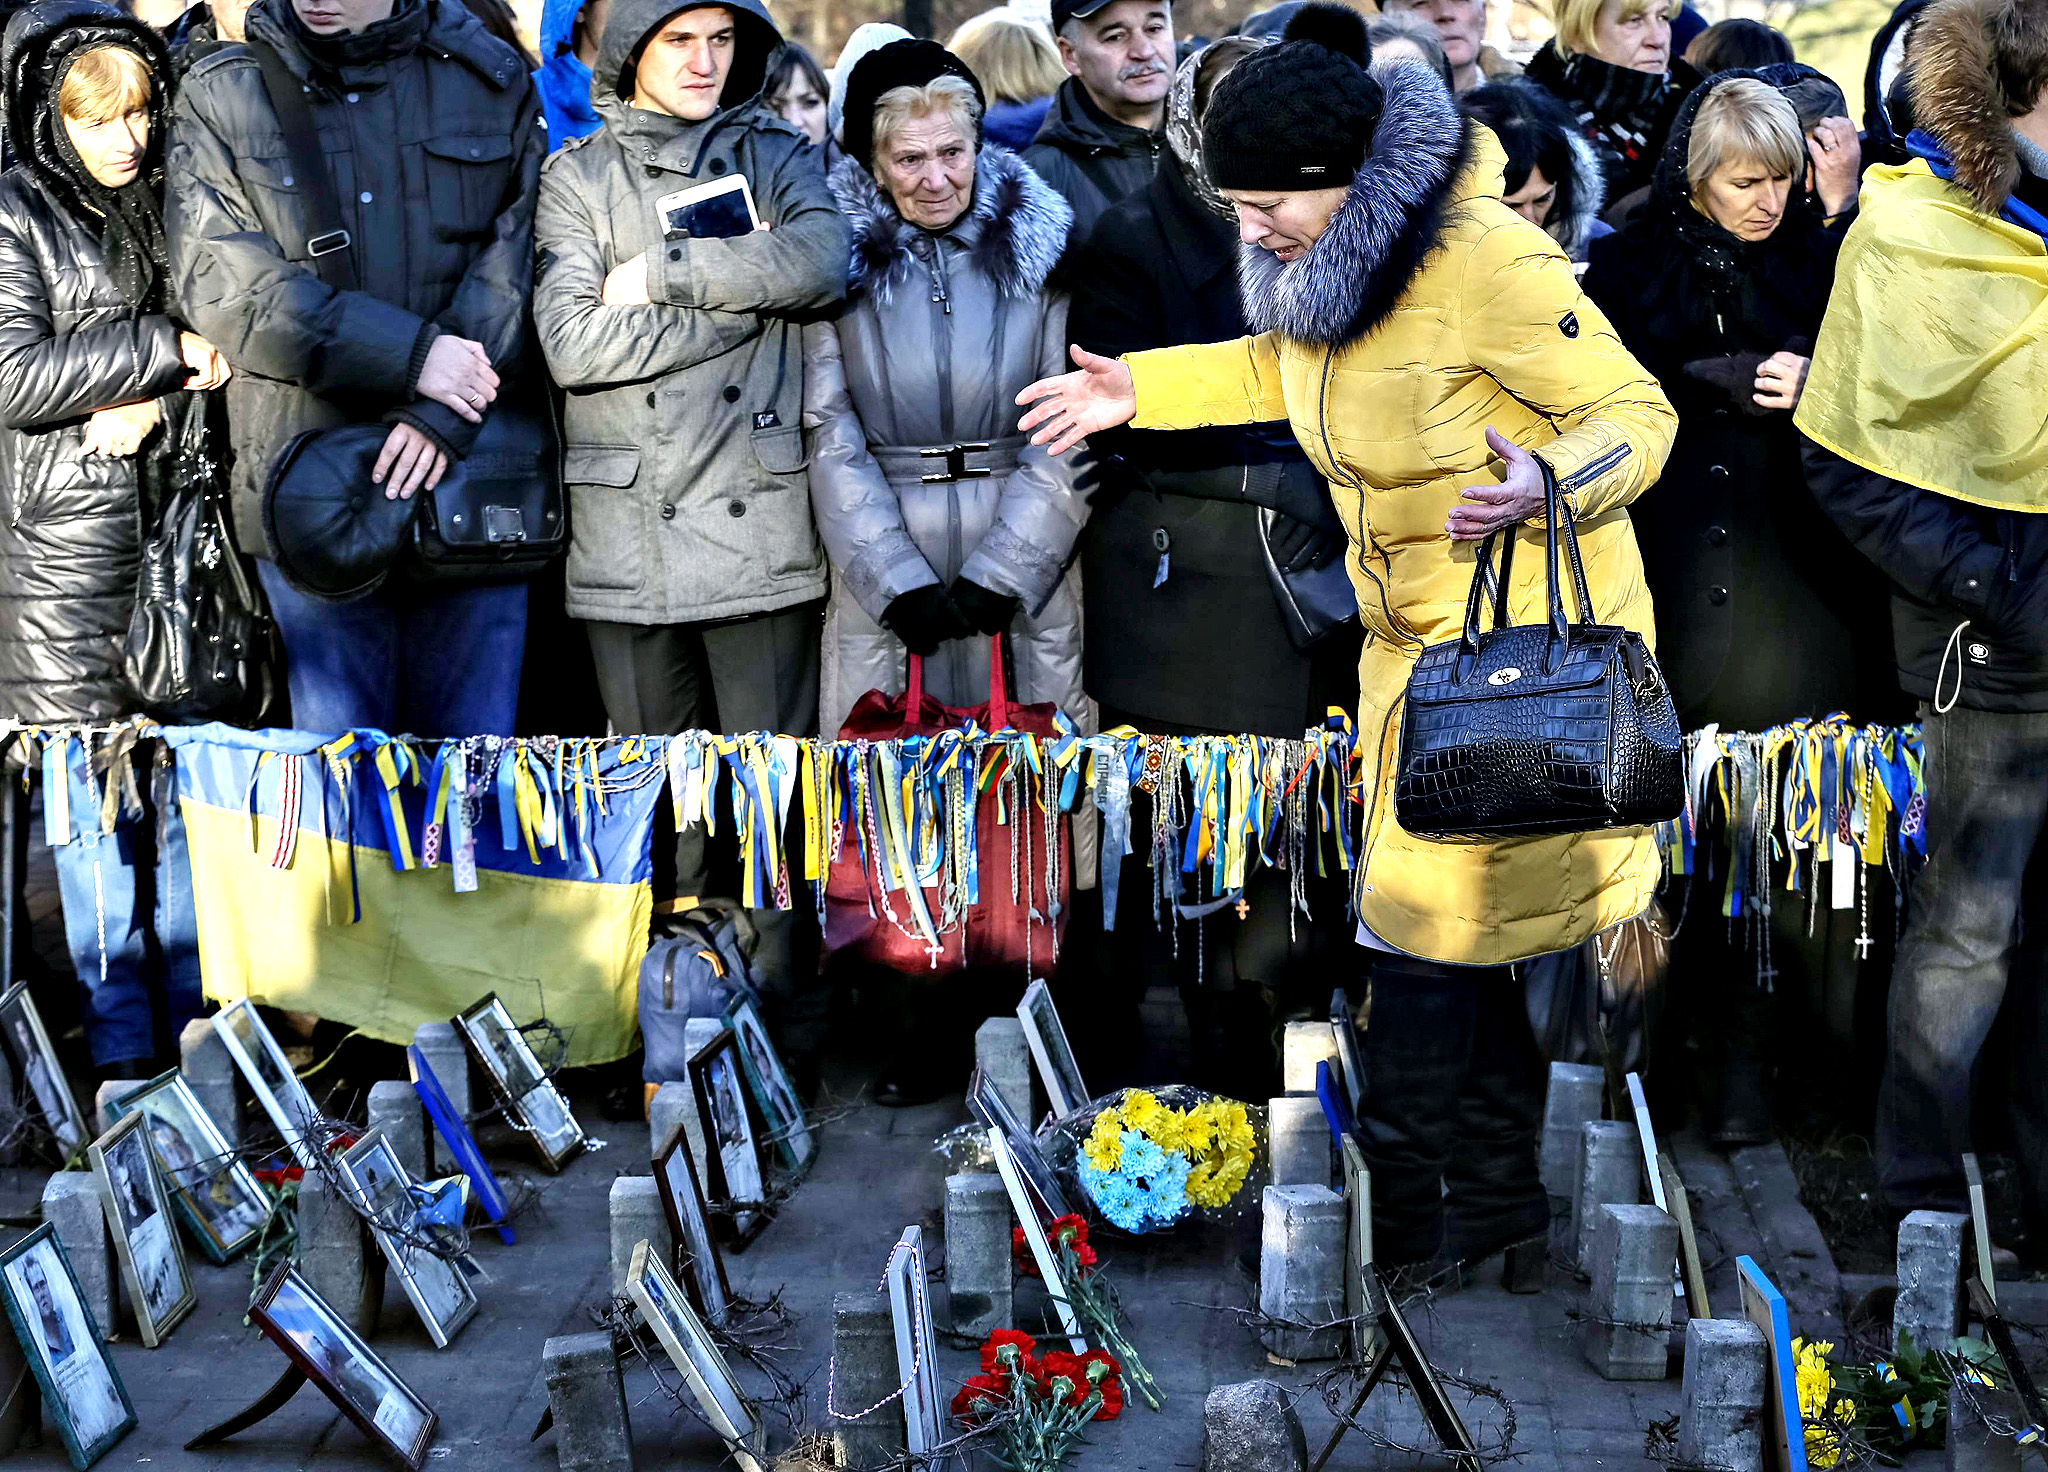 A woman reacts as she walks in between photos of anti-Yanukovich protesters killed during clashes, during a commemoration ceremony for them in Kiev...A woman reacts as she walks in between photos of anti-Yanukovich protesters killed during clashes, during a commemoration ceremony for them in Kiev November 21, 2014. Ukrainians marked the first anniversary of Ukrainian pro-European Union (EU) mass protests which caused a change in the country's leadership and brought Ukraine closer to the EU.